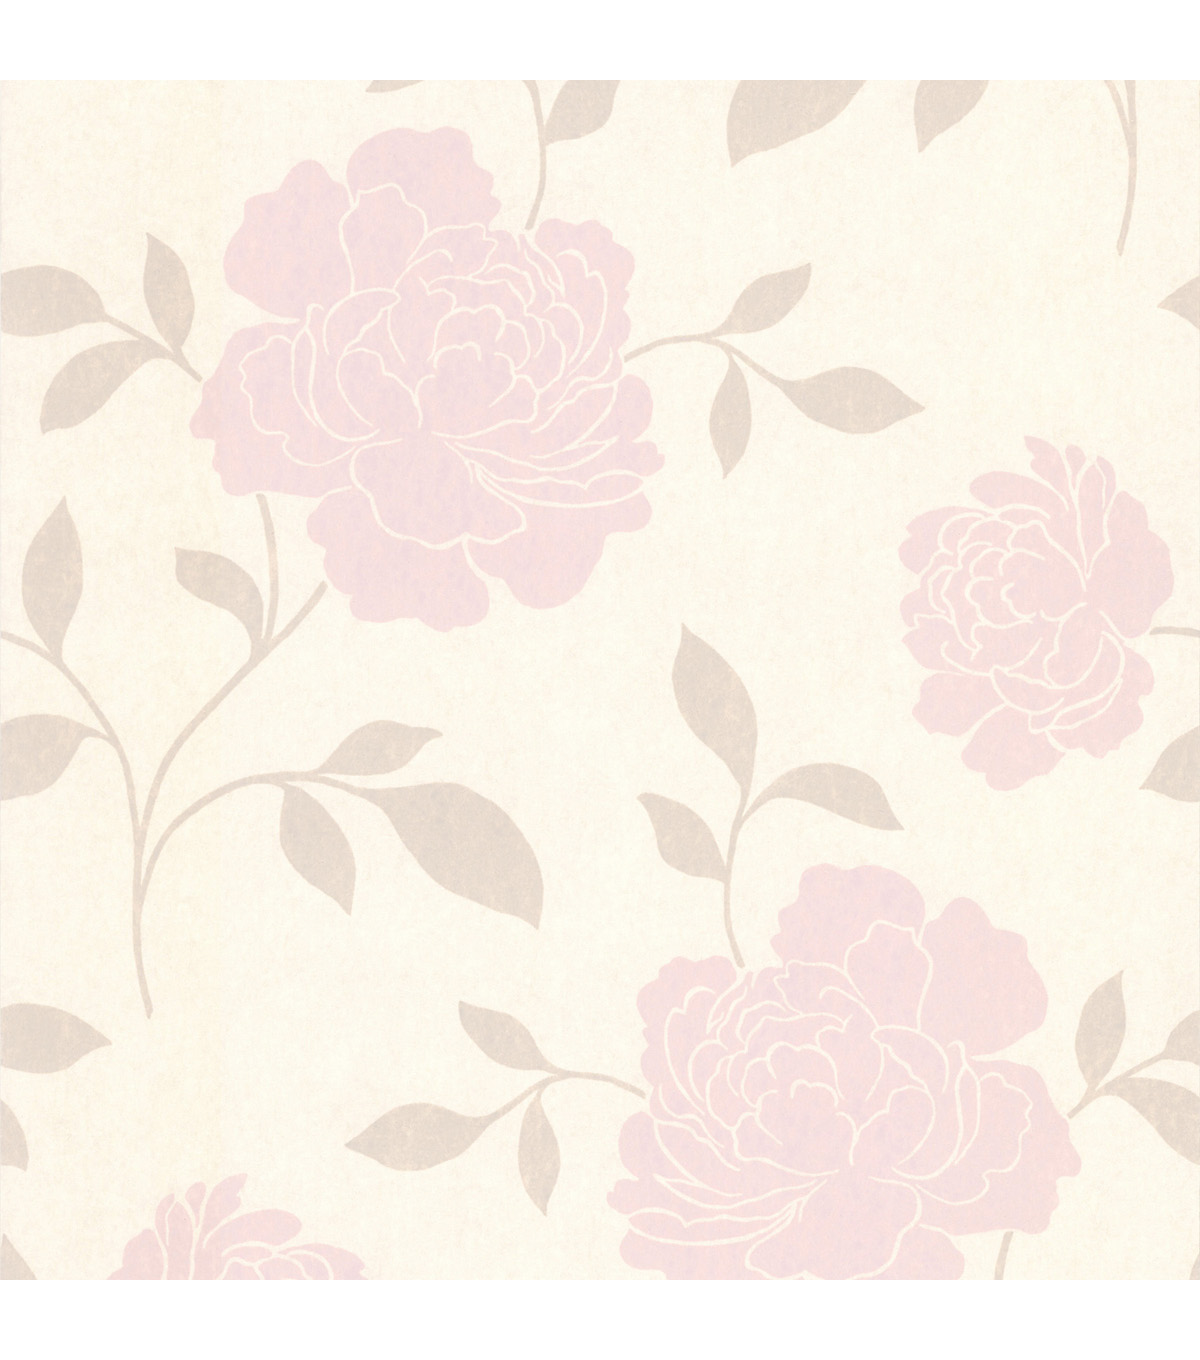 Clara Blush Floral Silhouette Wallpaper Sample